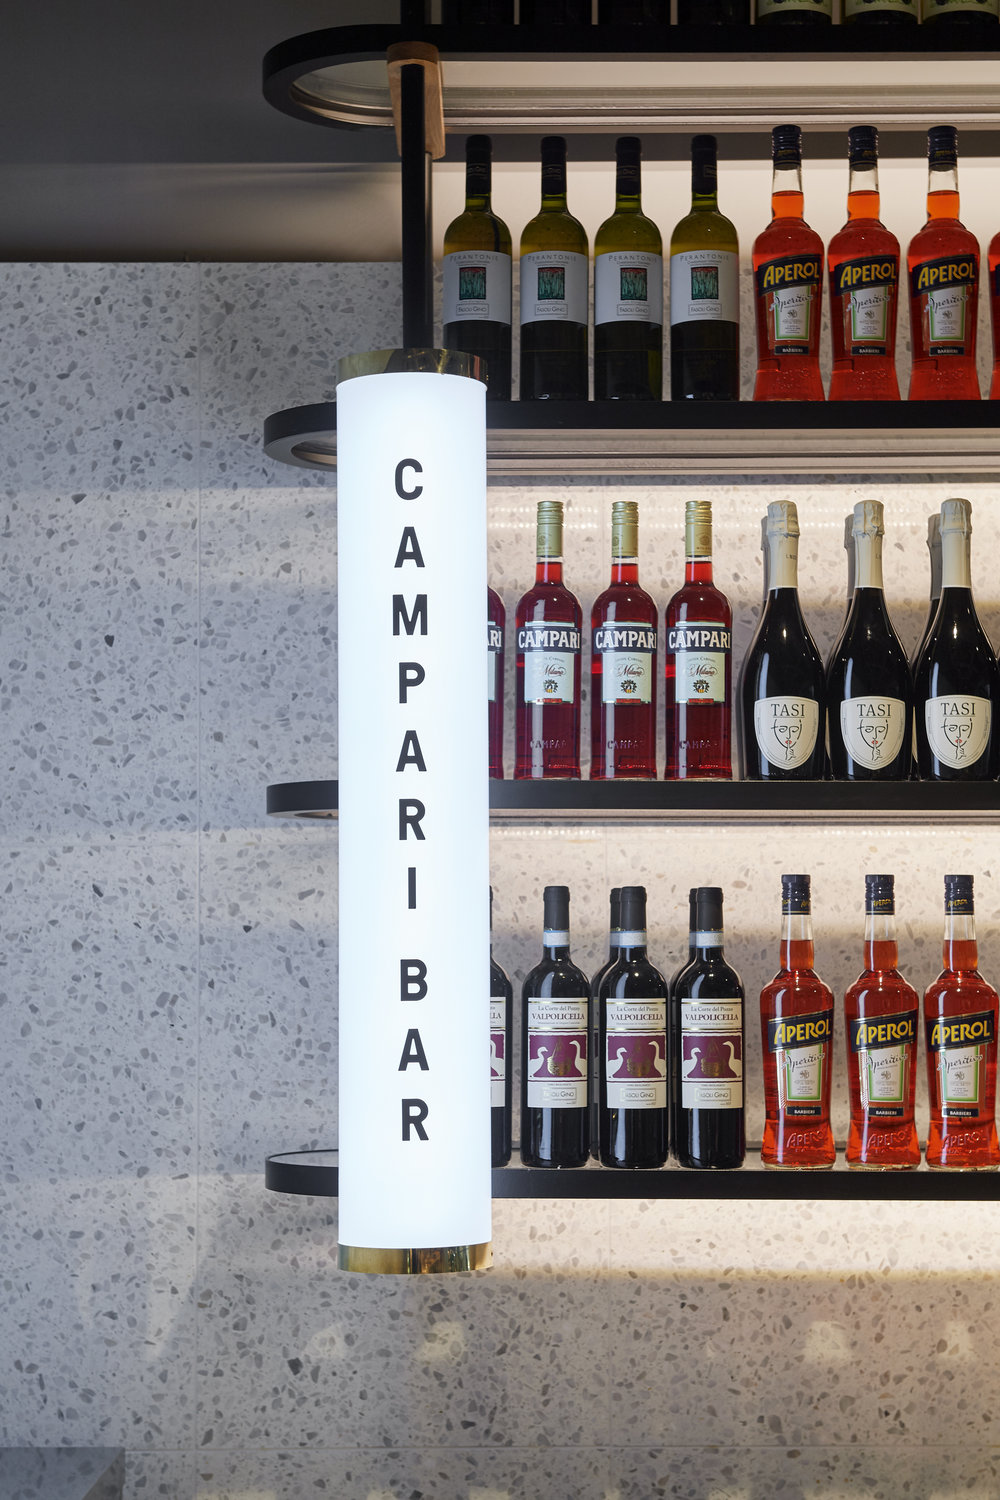 brunetti-opening-breakfast-2017-campari-bar.jpg